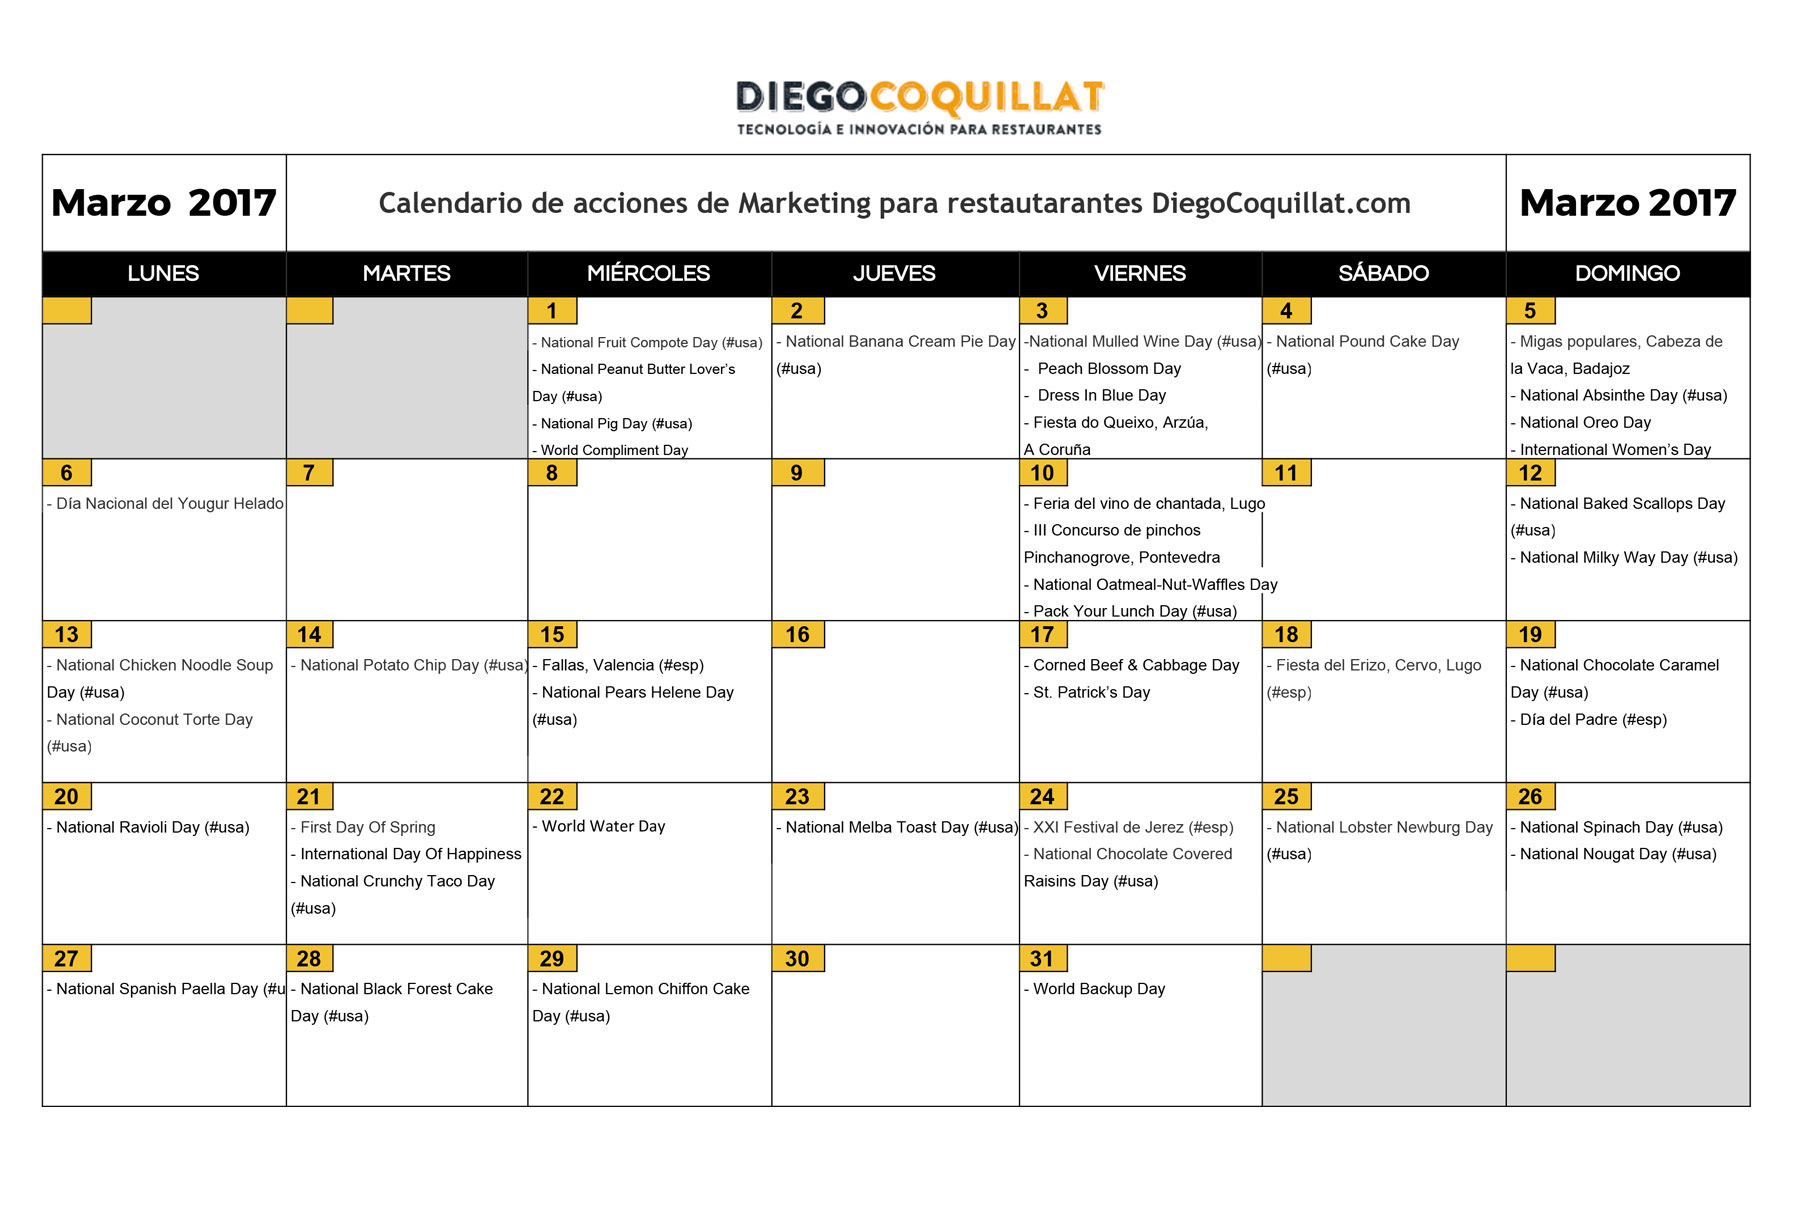 Marzo 2017: Calendario de acciones de marketing para restaurantes